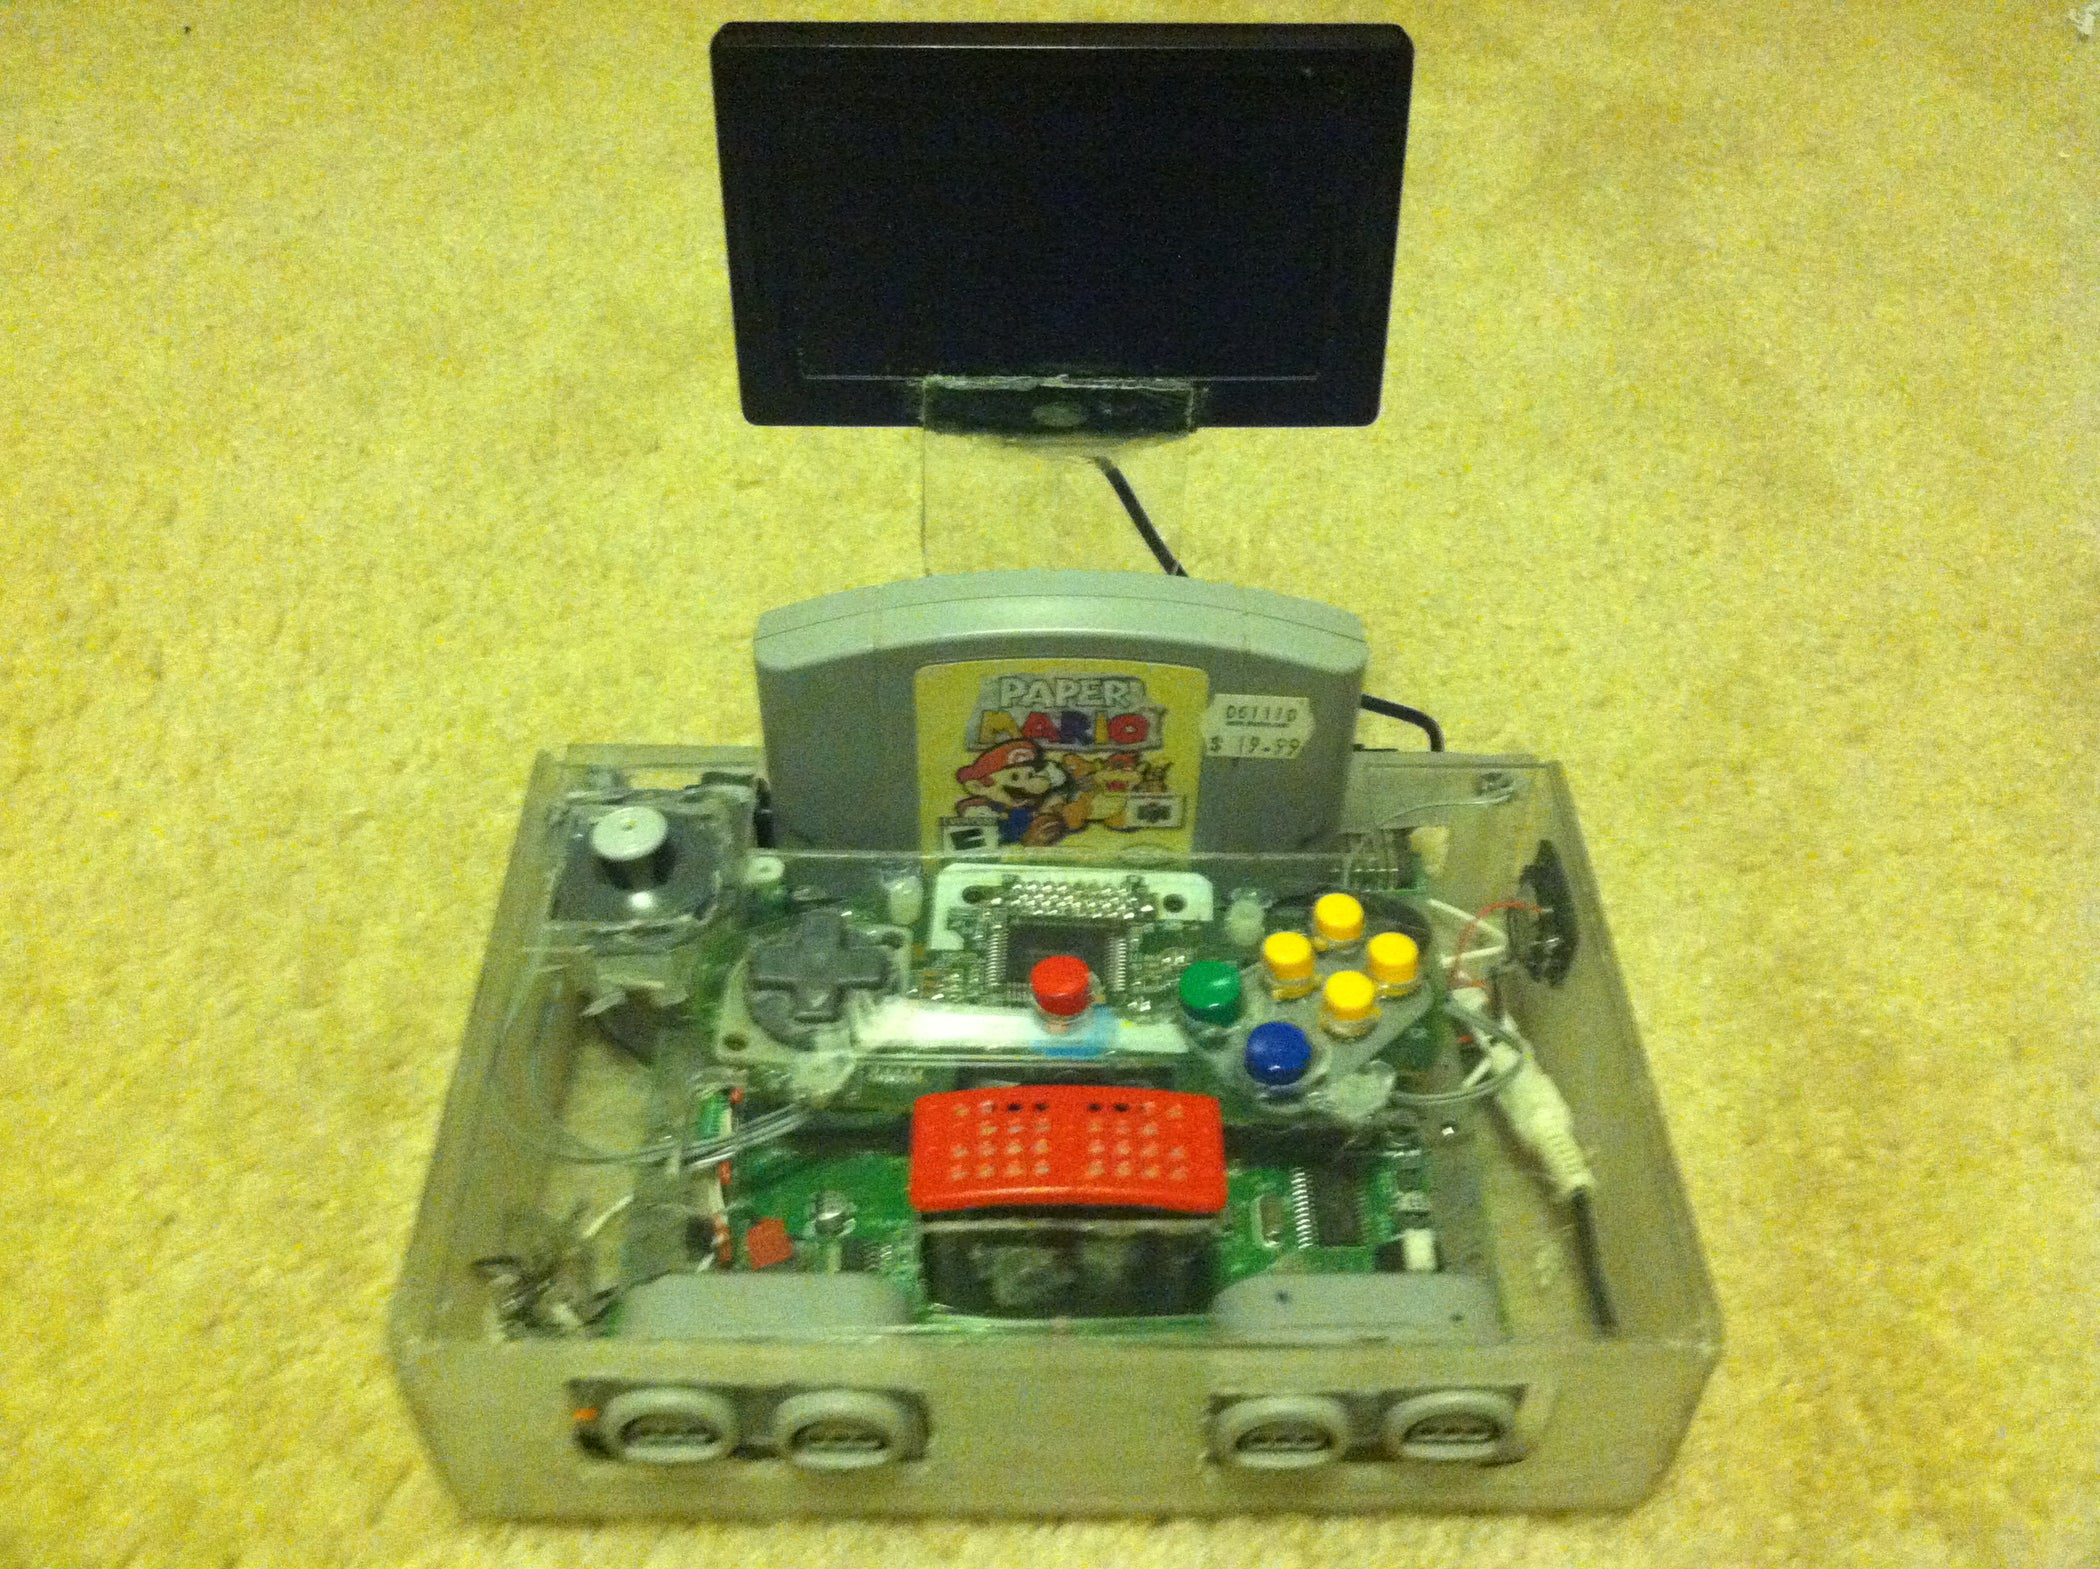 Nintendo 64 Wiring Diagram Library Nes Schematic How To Make A Portable Steps 8 With Pictures